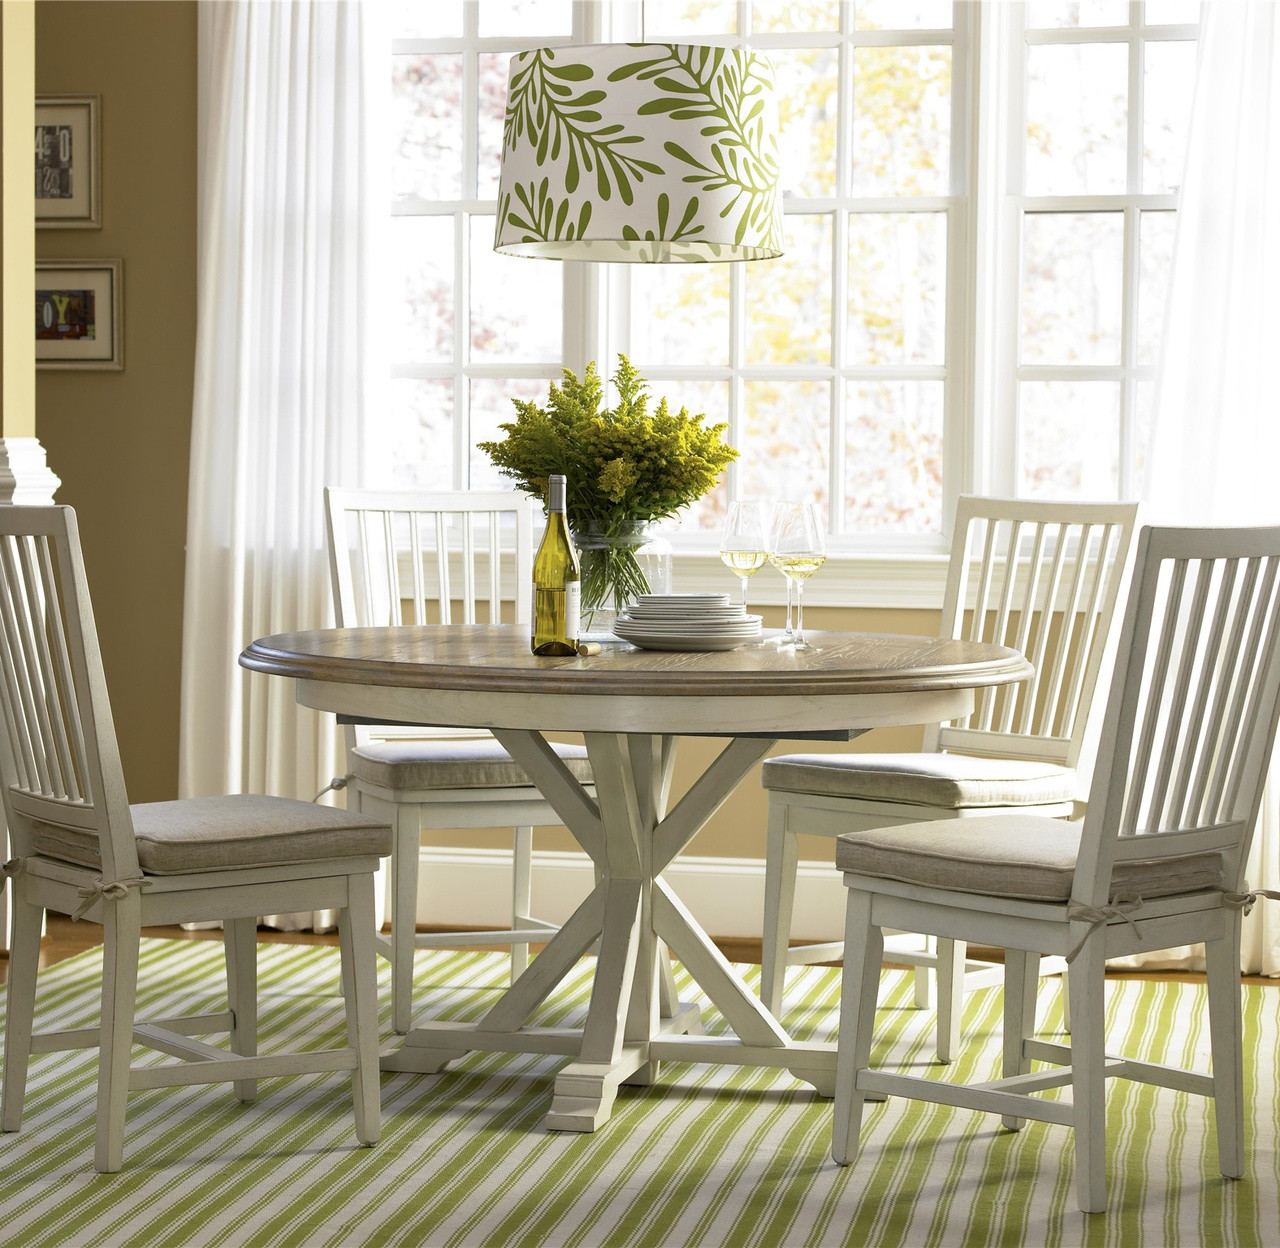 Expandable White Dining Table Coastal Beach White Oak Round Expandable Dining Table 54